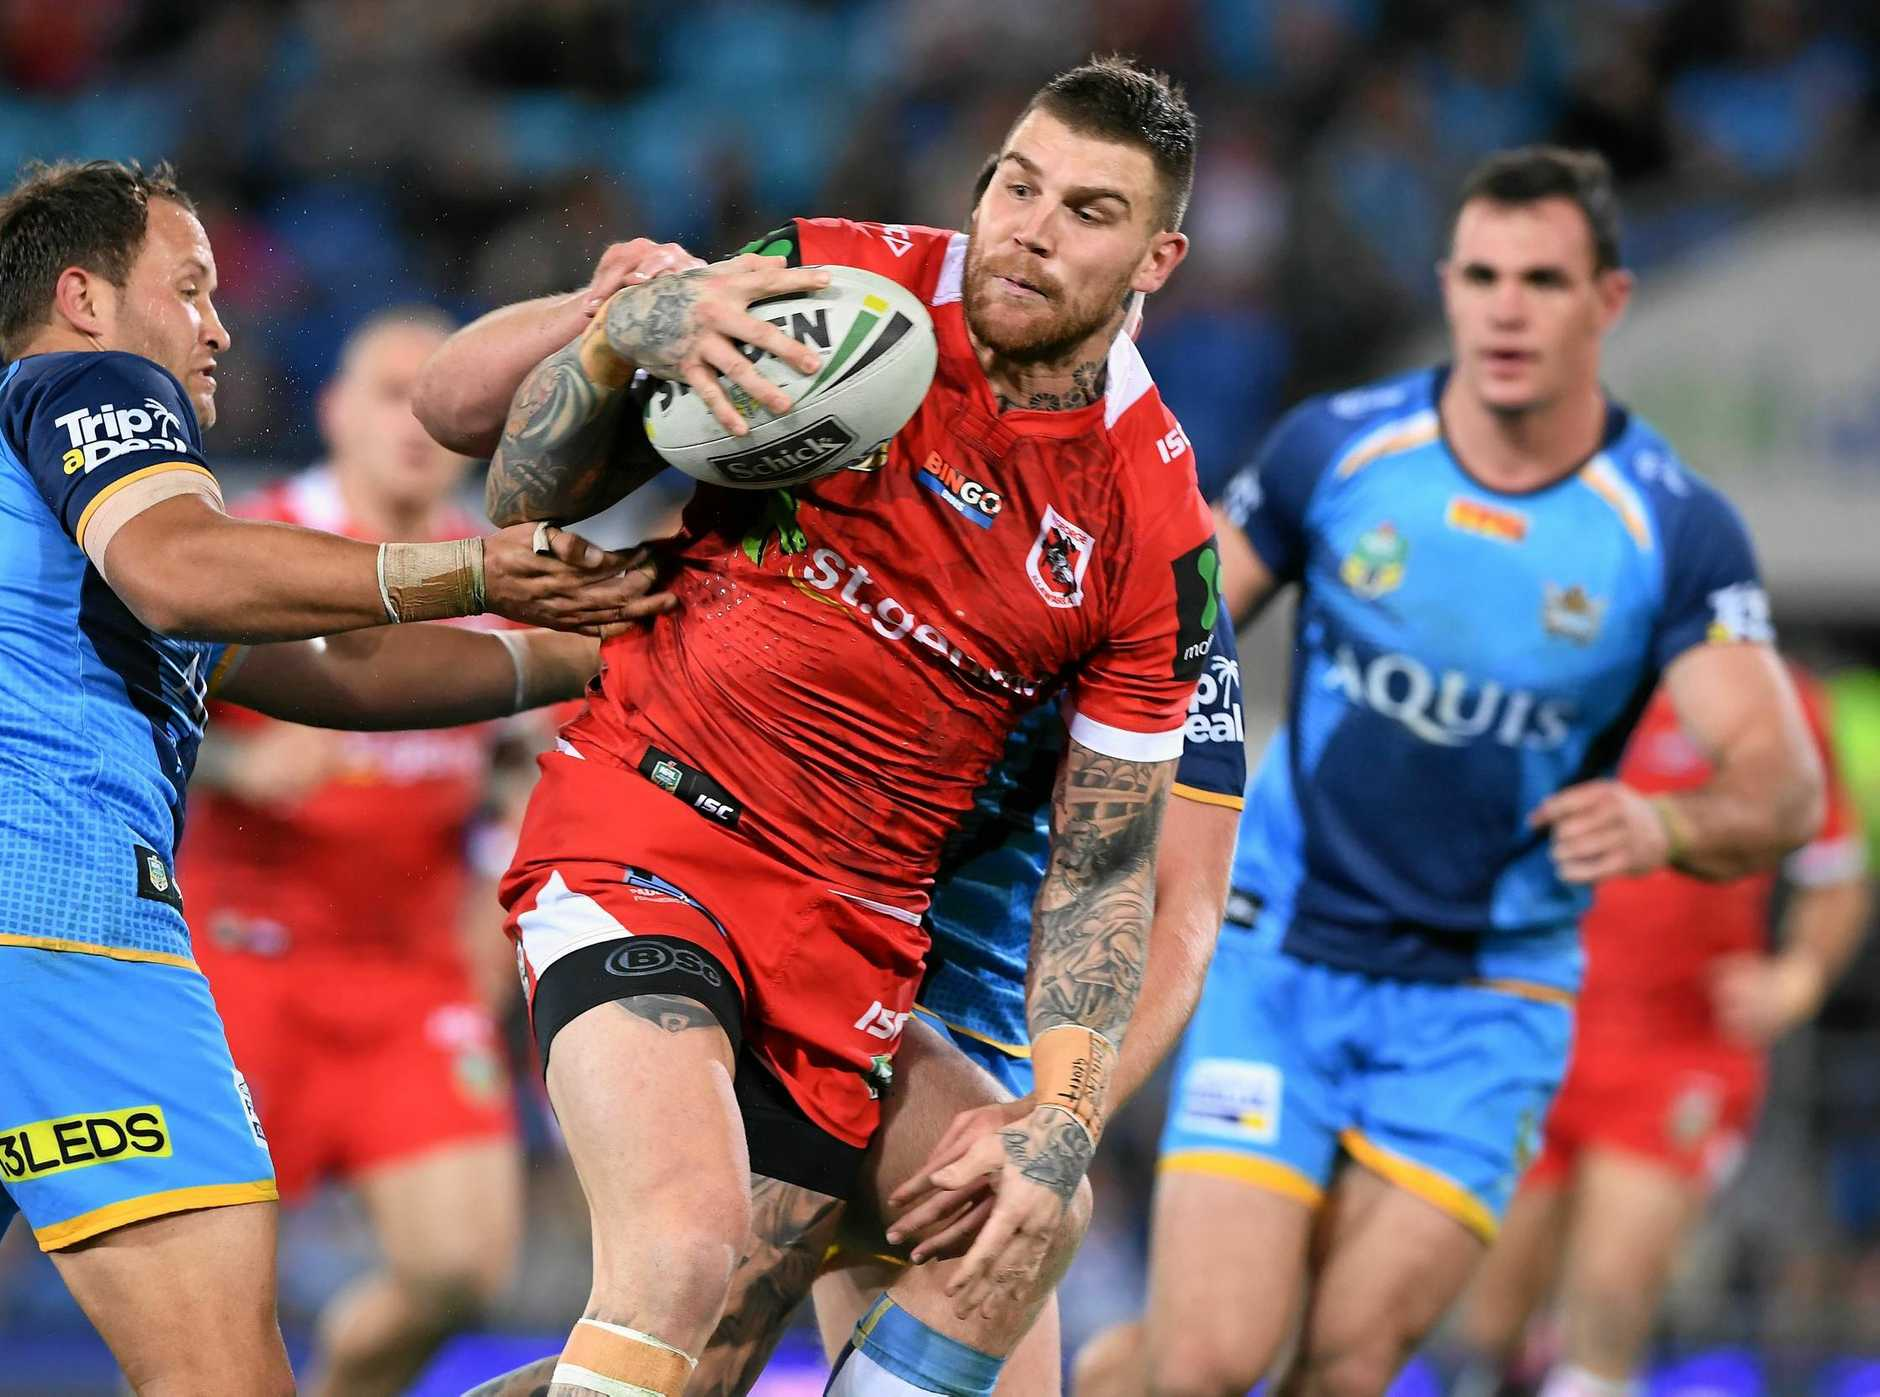 Dragons player Josh Dugan during the round 17 match against the Titans.